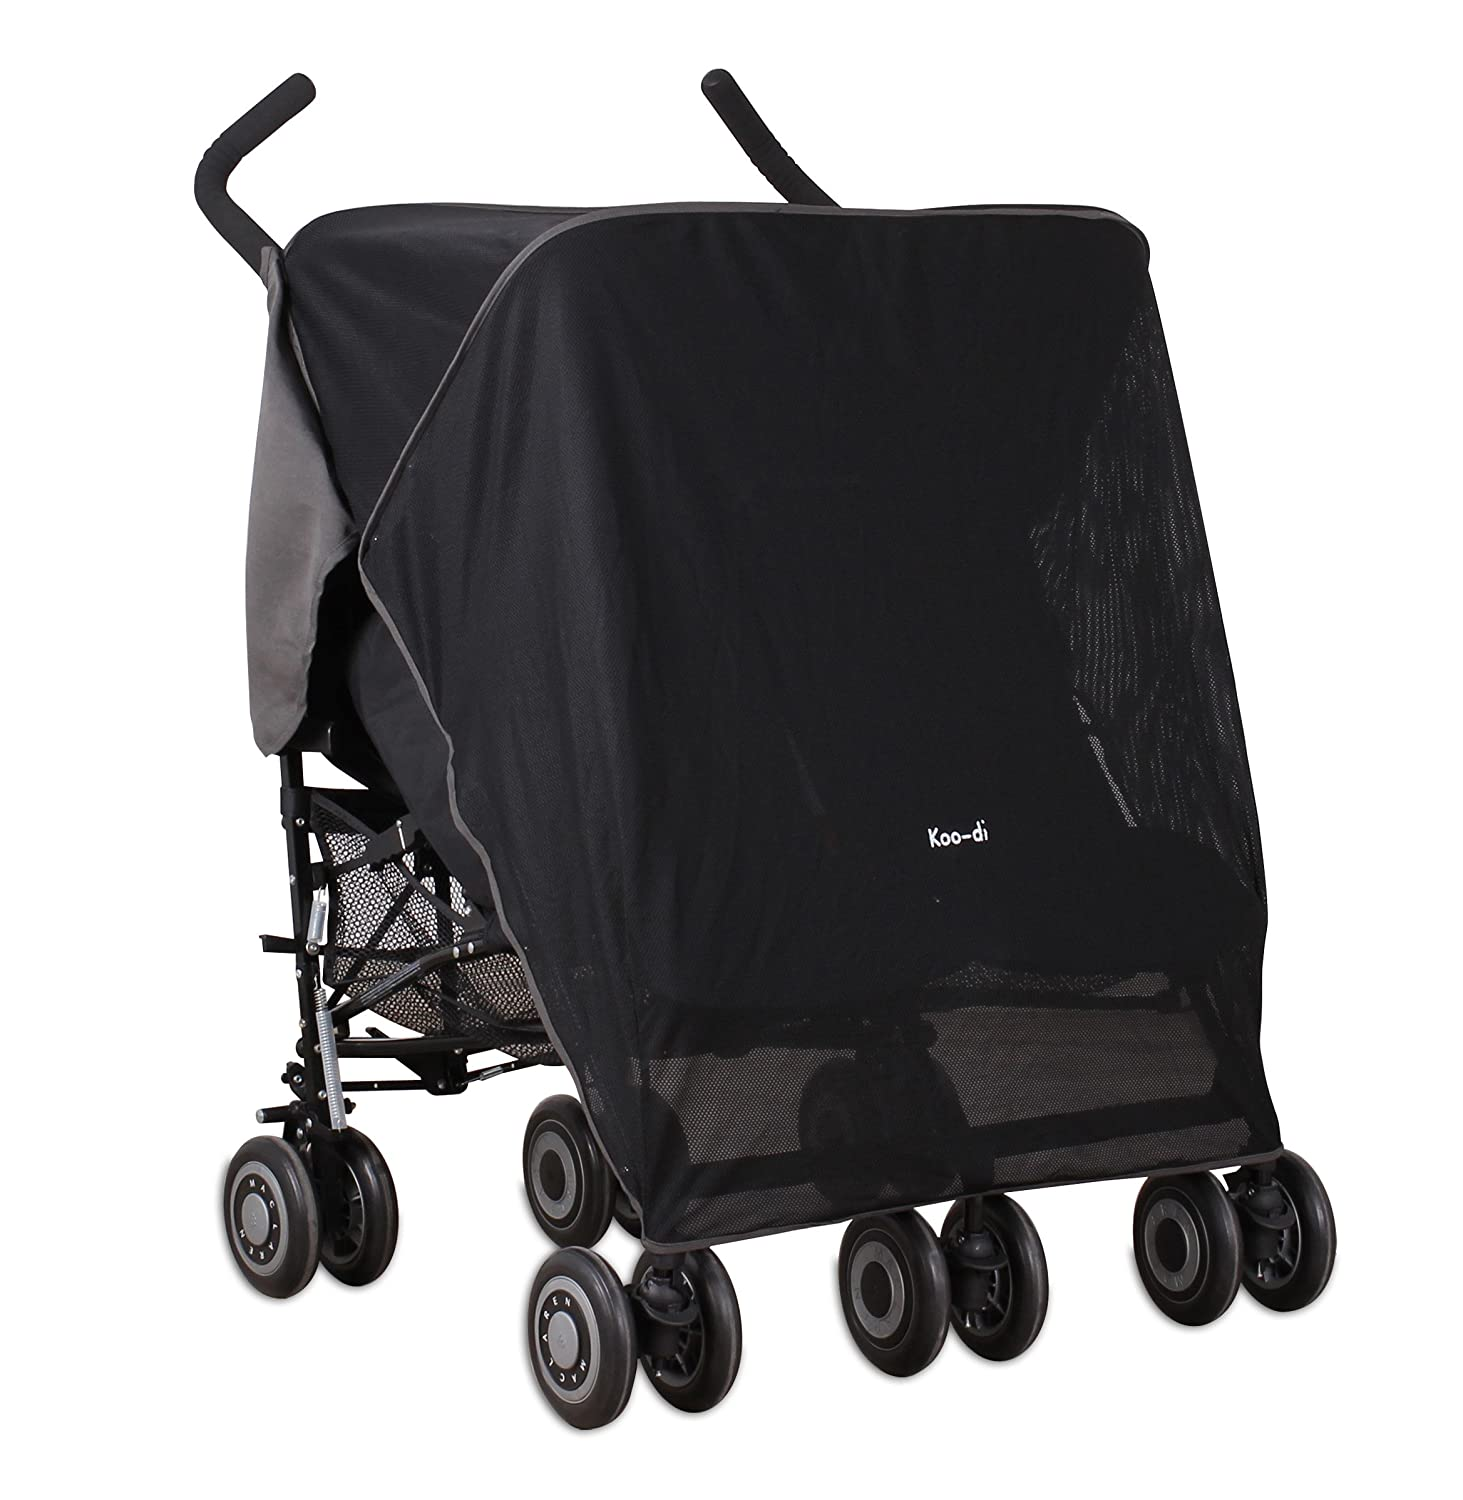 Koo-di Double Sun and Sleep Stroller Cover (Black) KD064/02